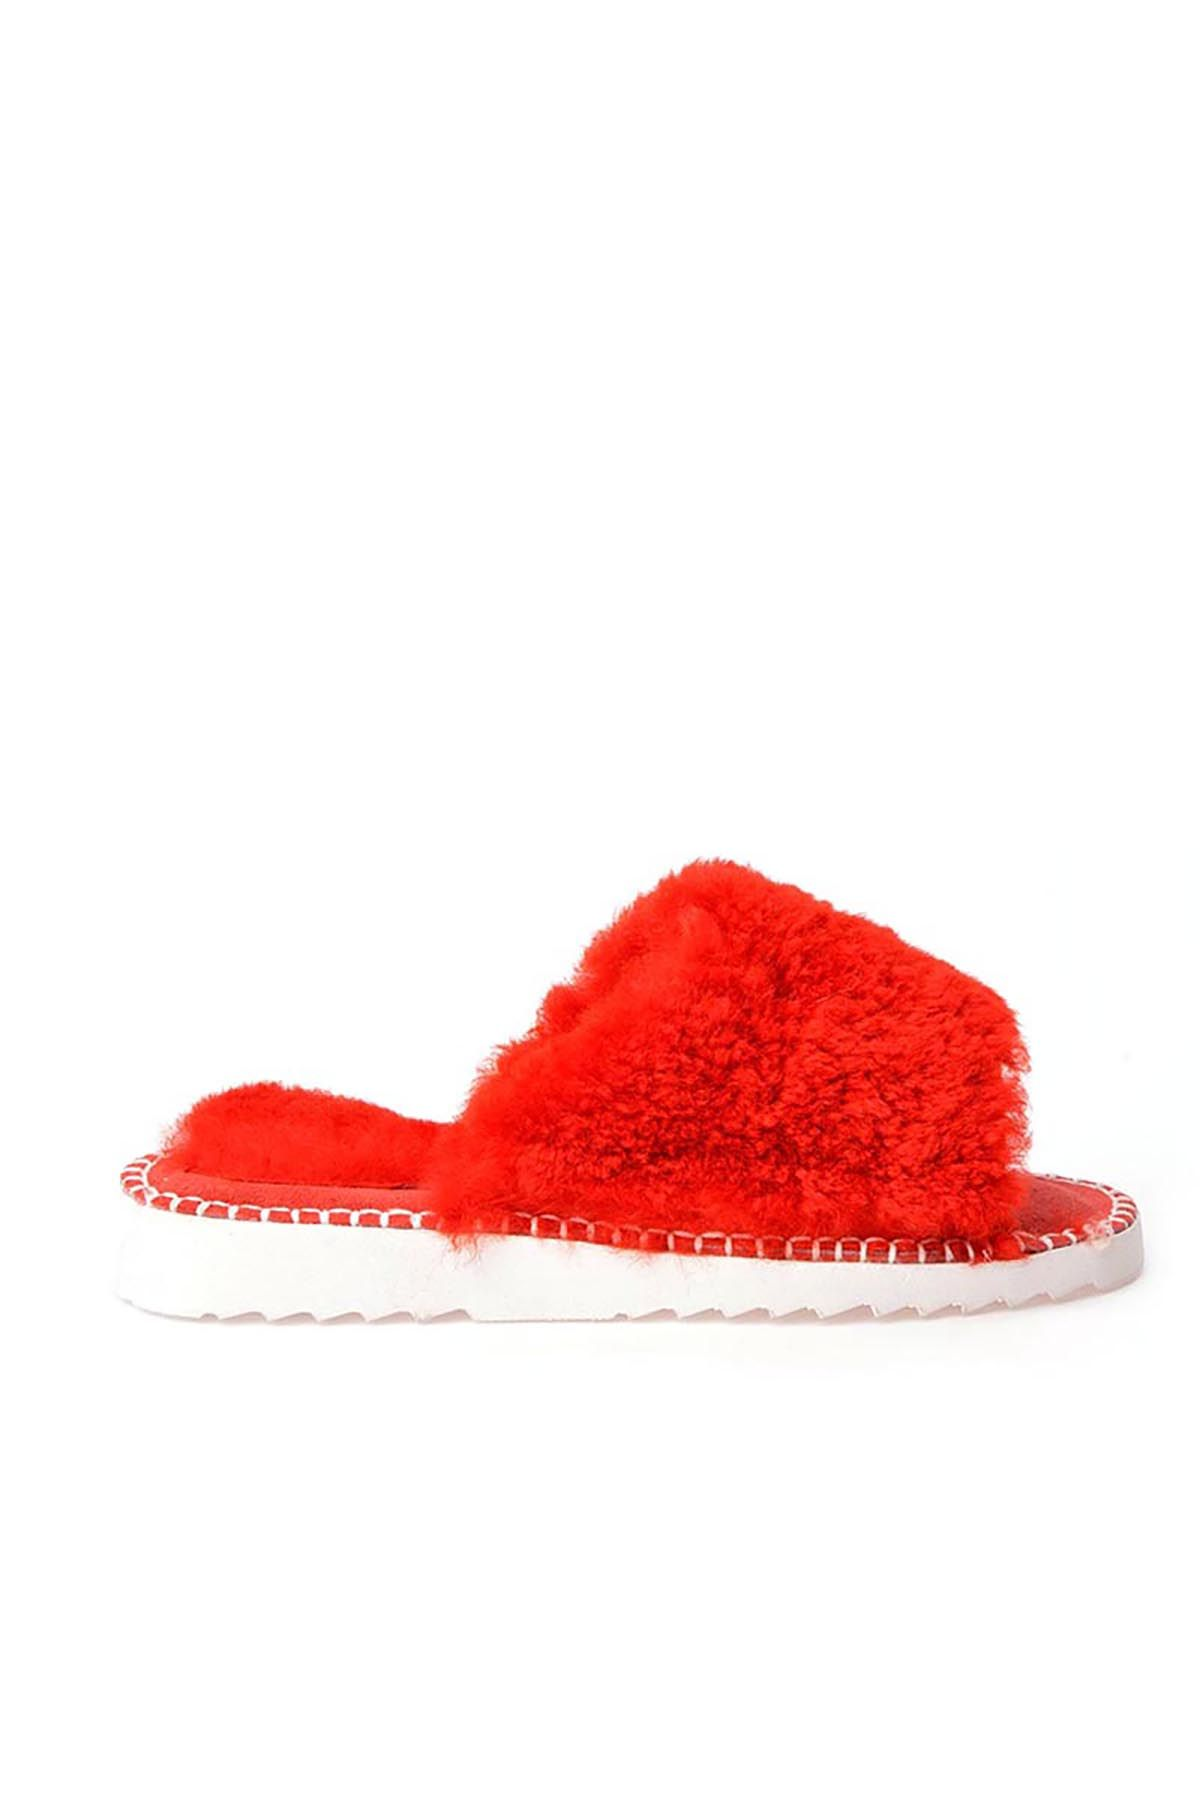 Pegia Port Pelle Women Slippers From Genuine Fur REC-007 Red